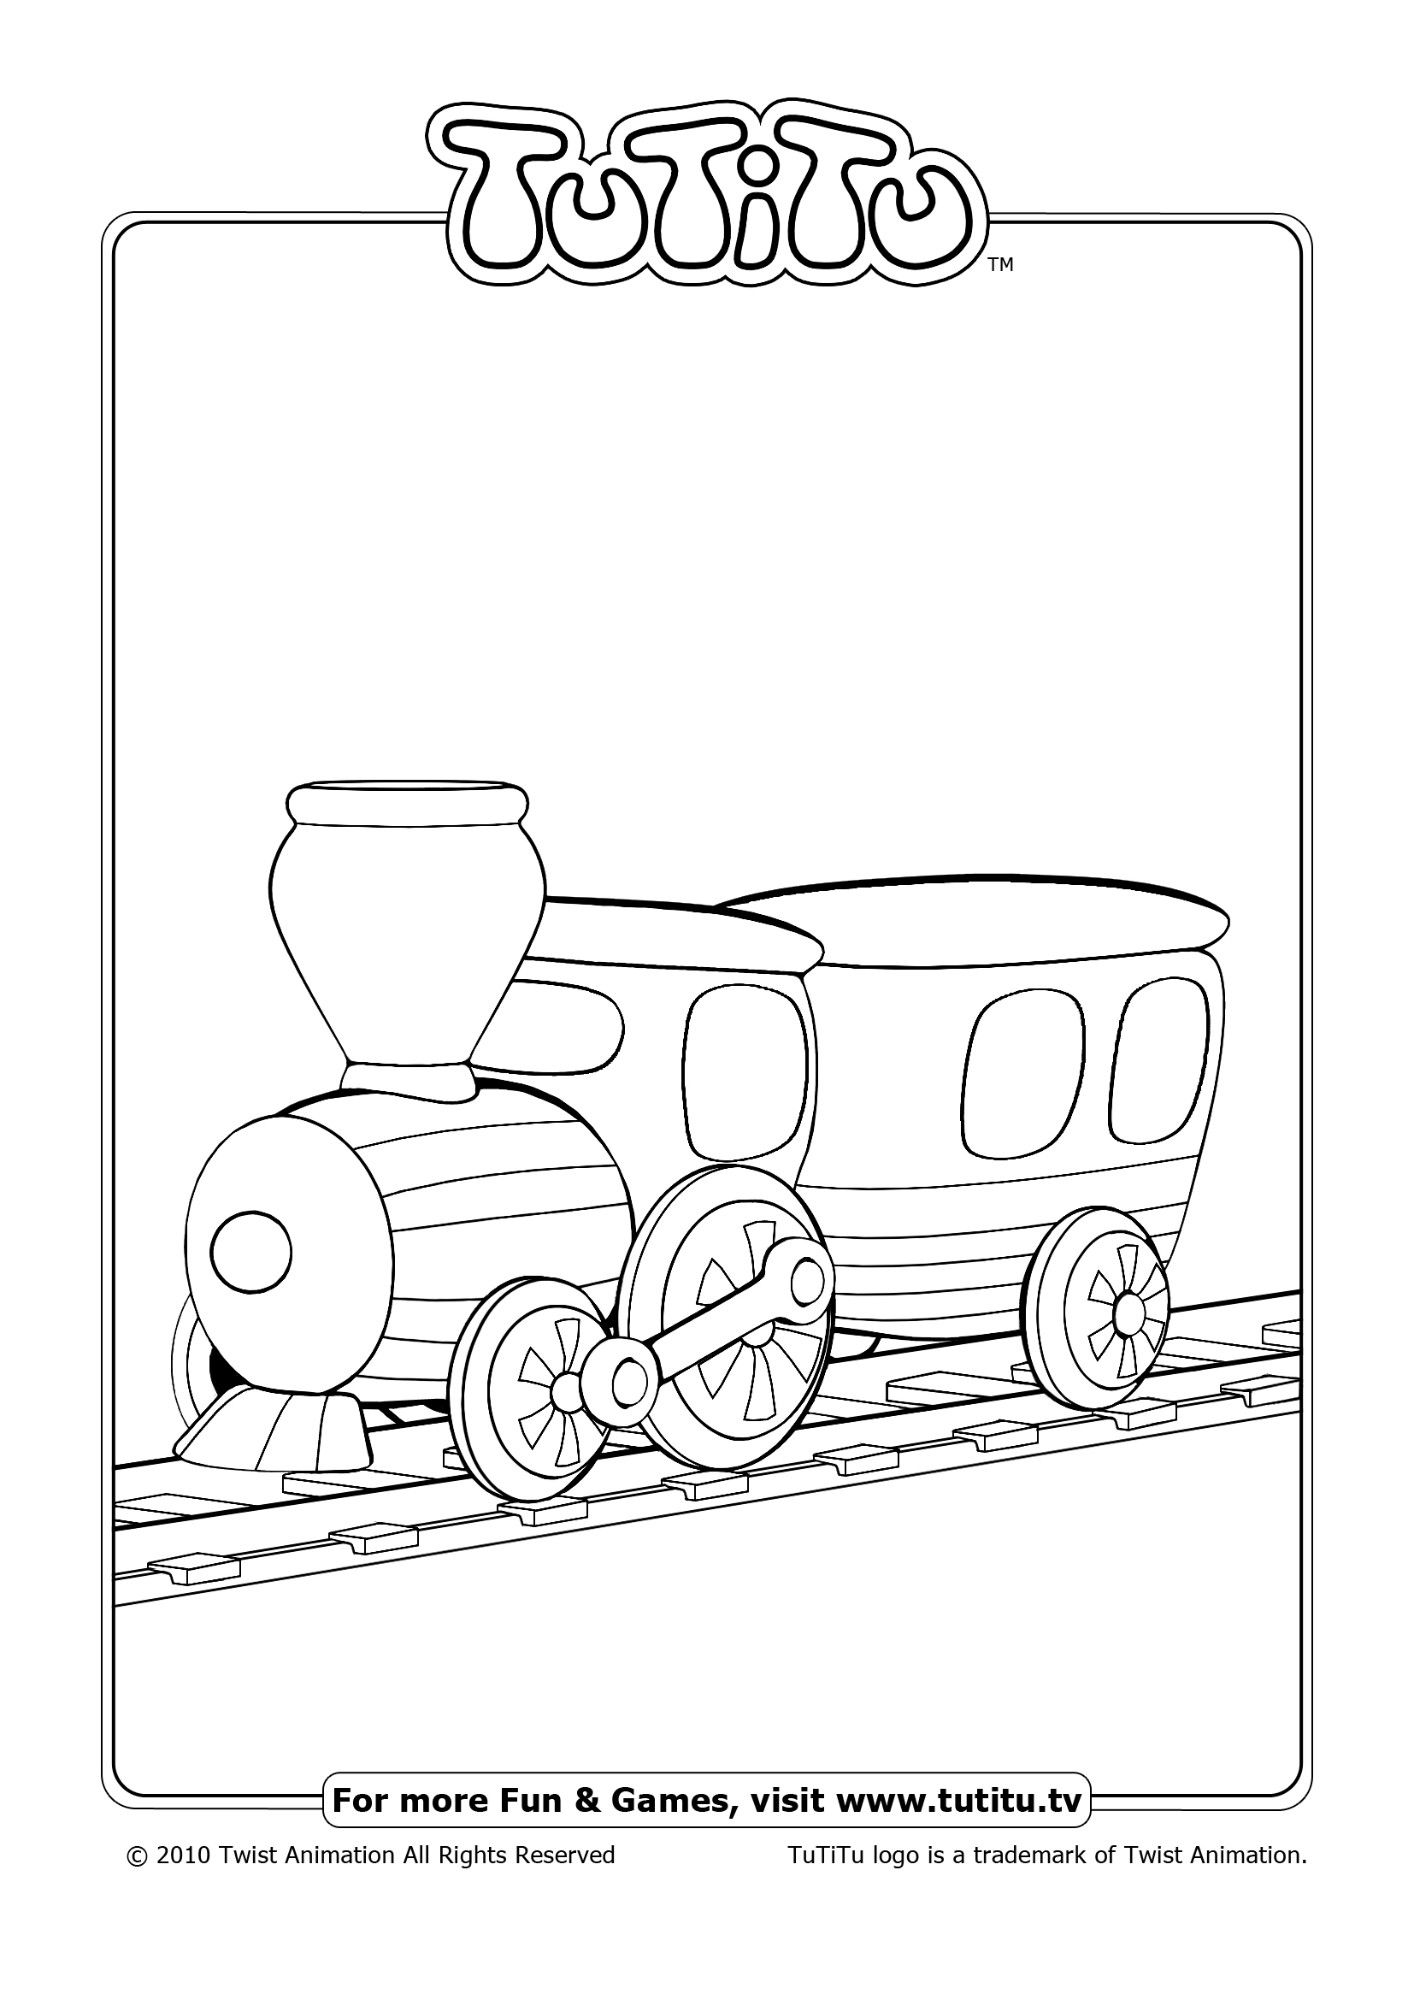 Free Coloring Pages Await in TuTiTu\'s Playground - games, puzzles ...